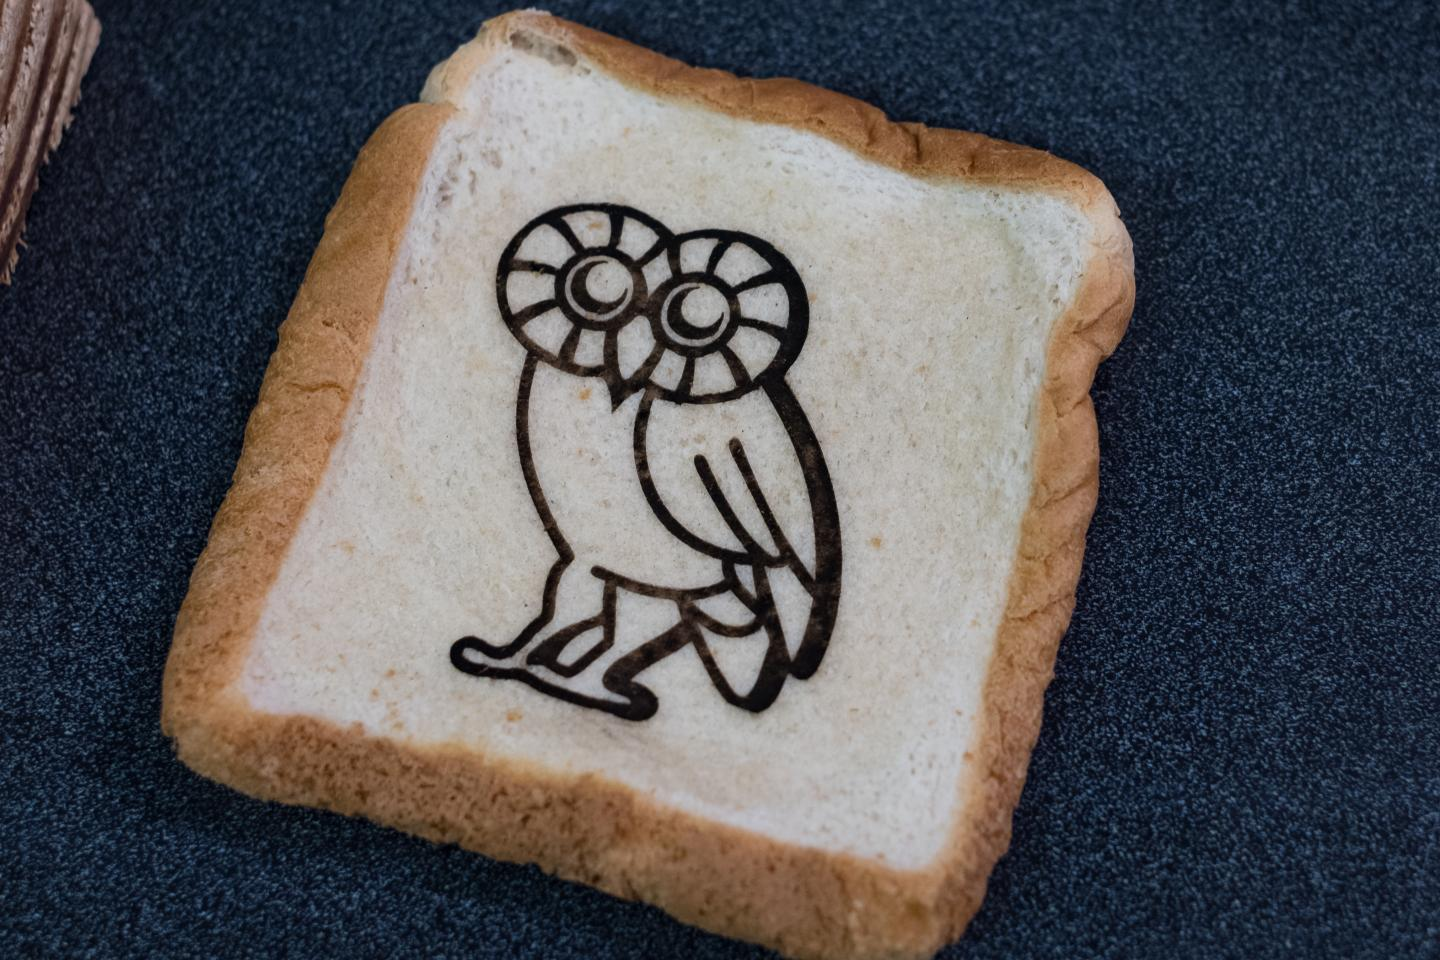 Graphene owl drawn on a piece of bread